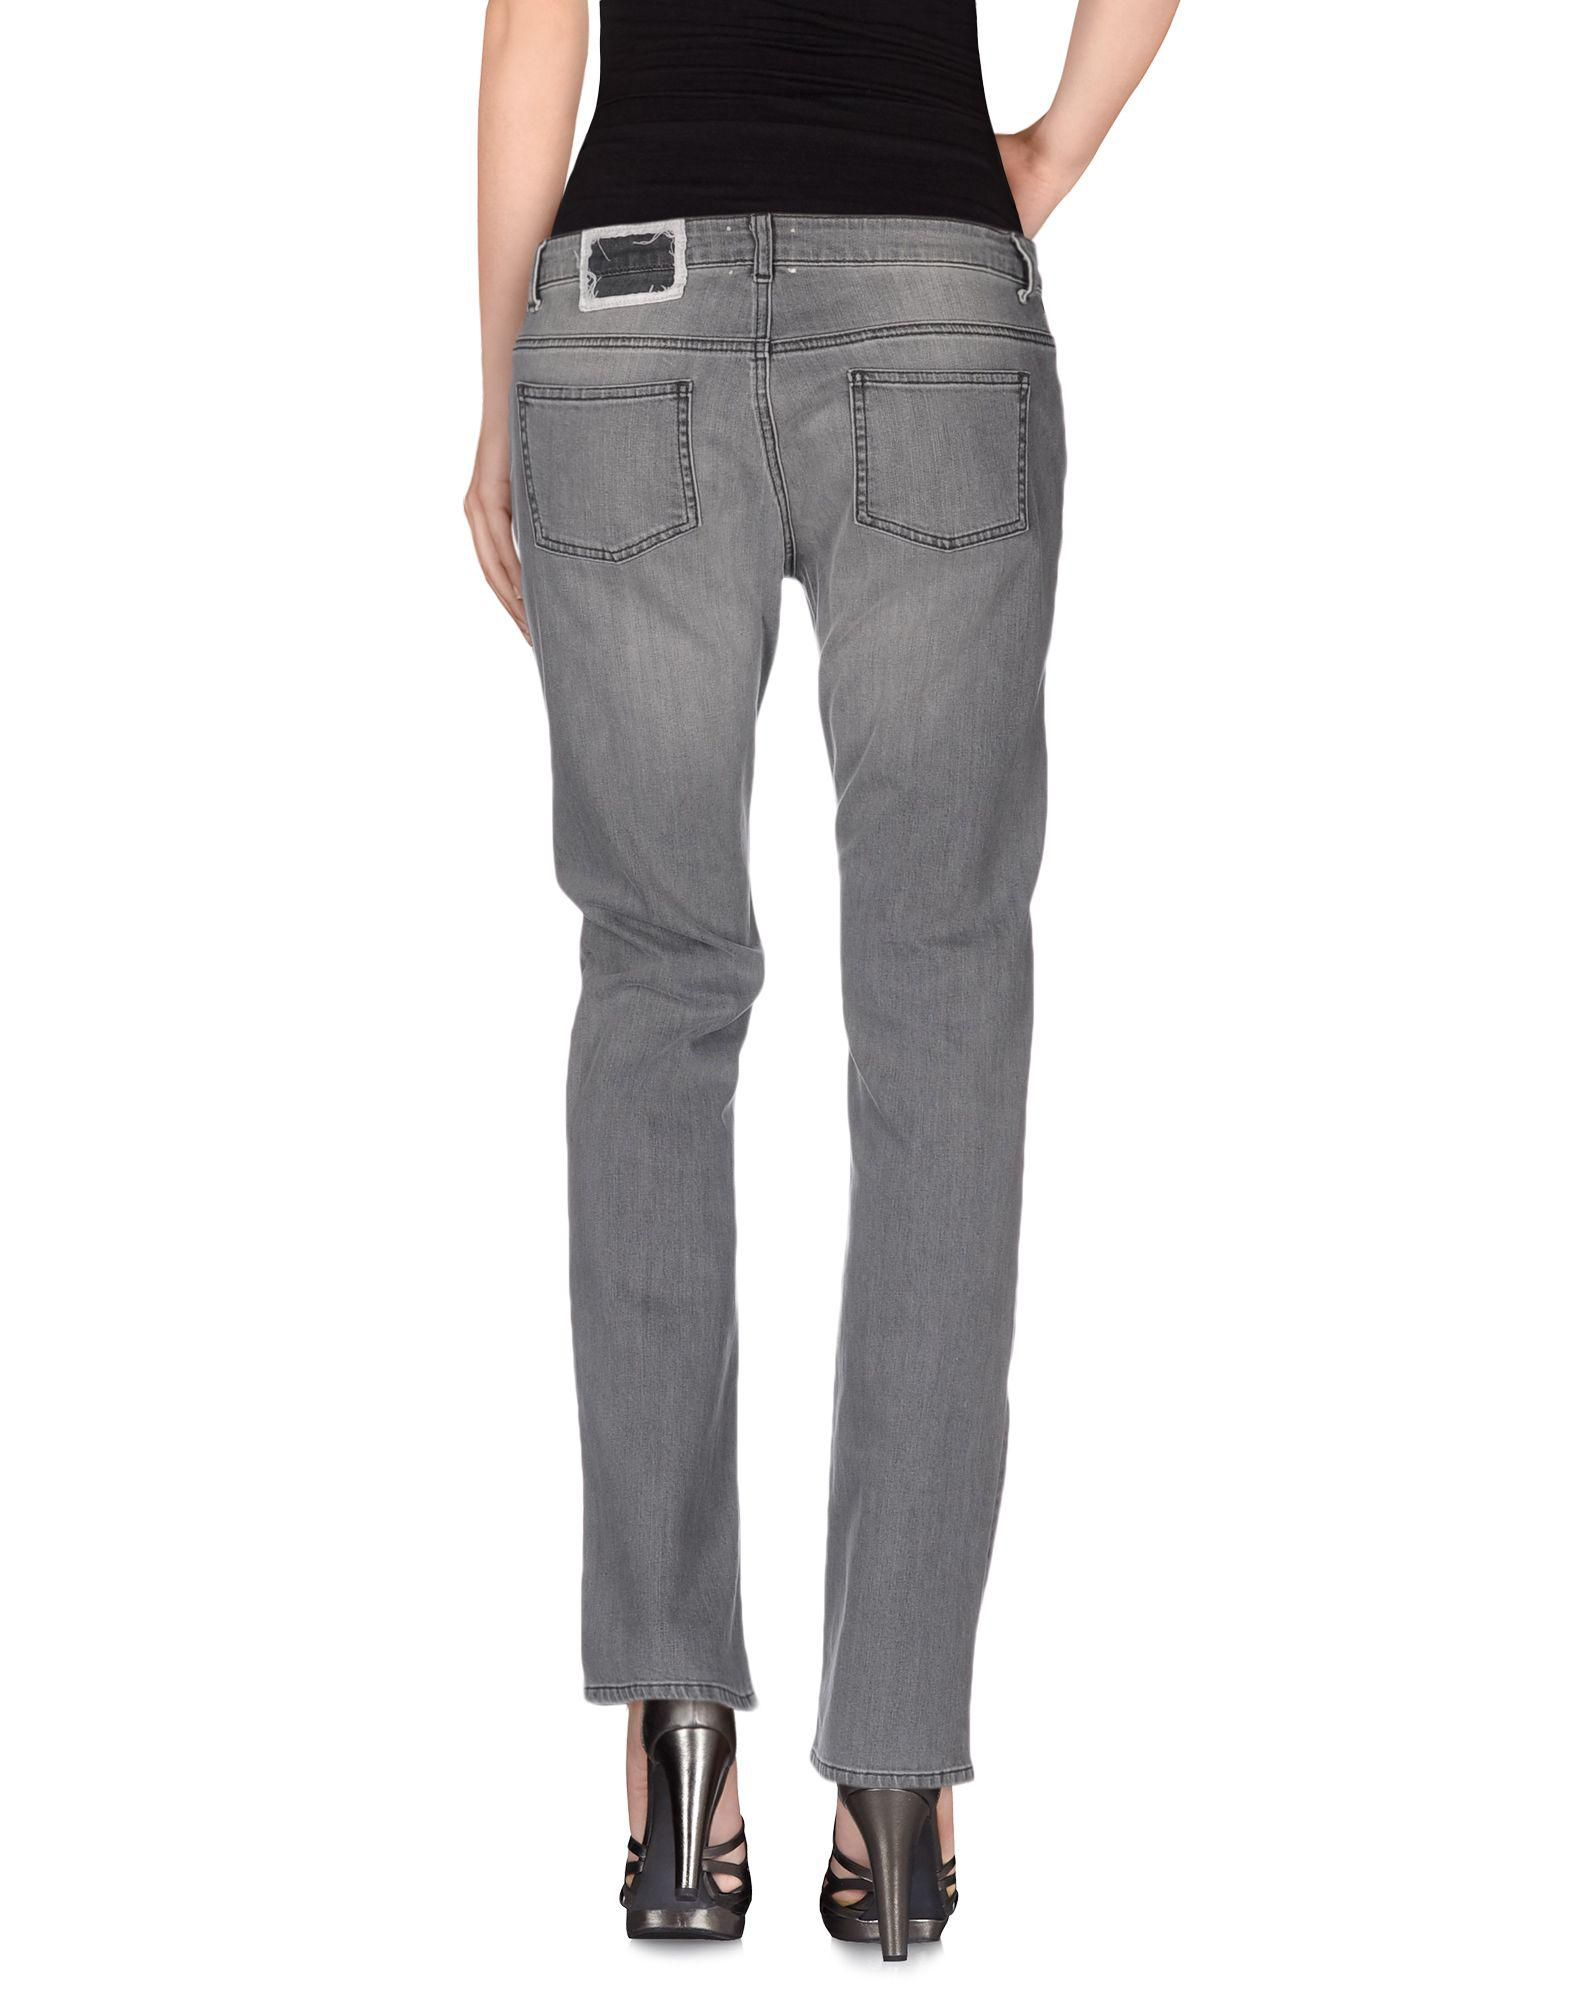 DENIM - Denim trousers Laurence Dolig? SHbIY844Q